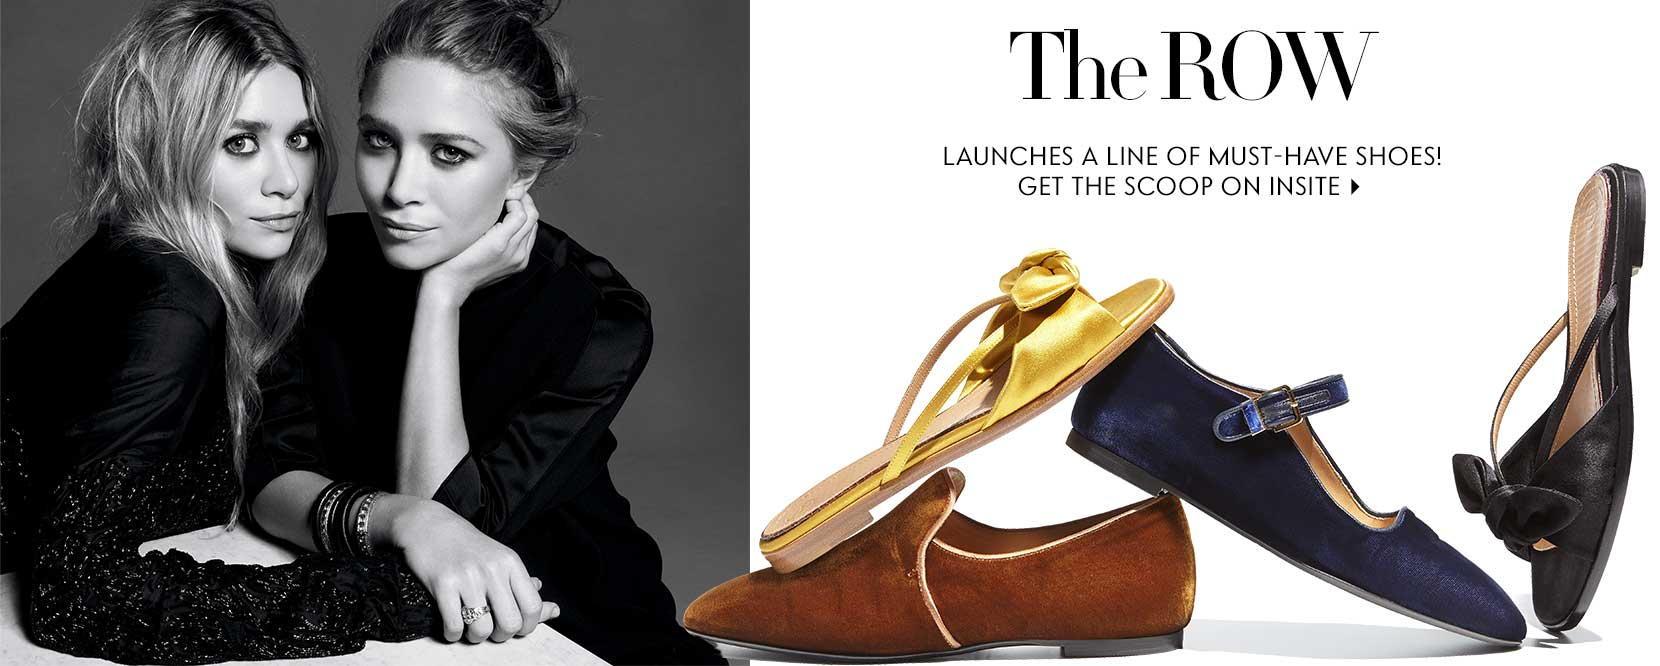 The Row launches a must have shoe collection!